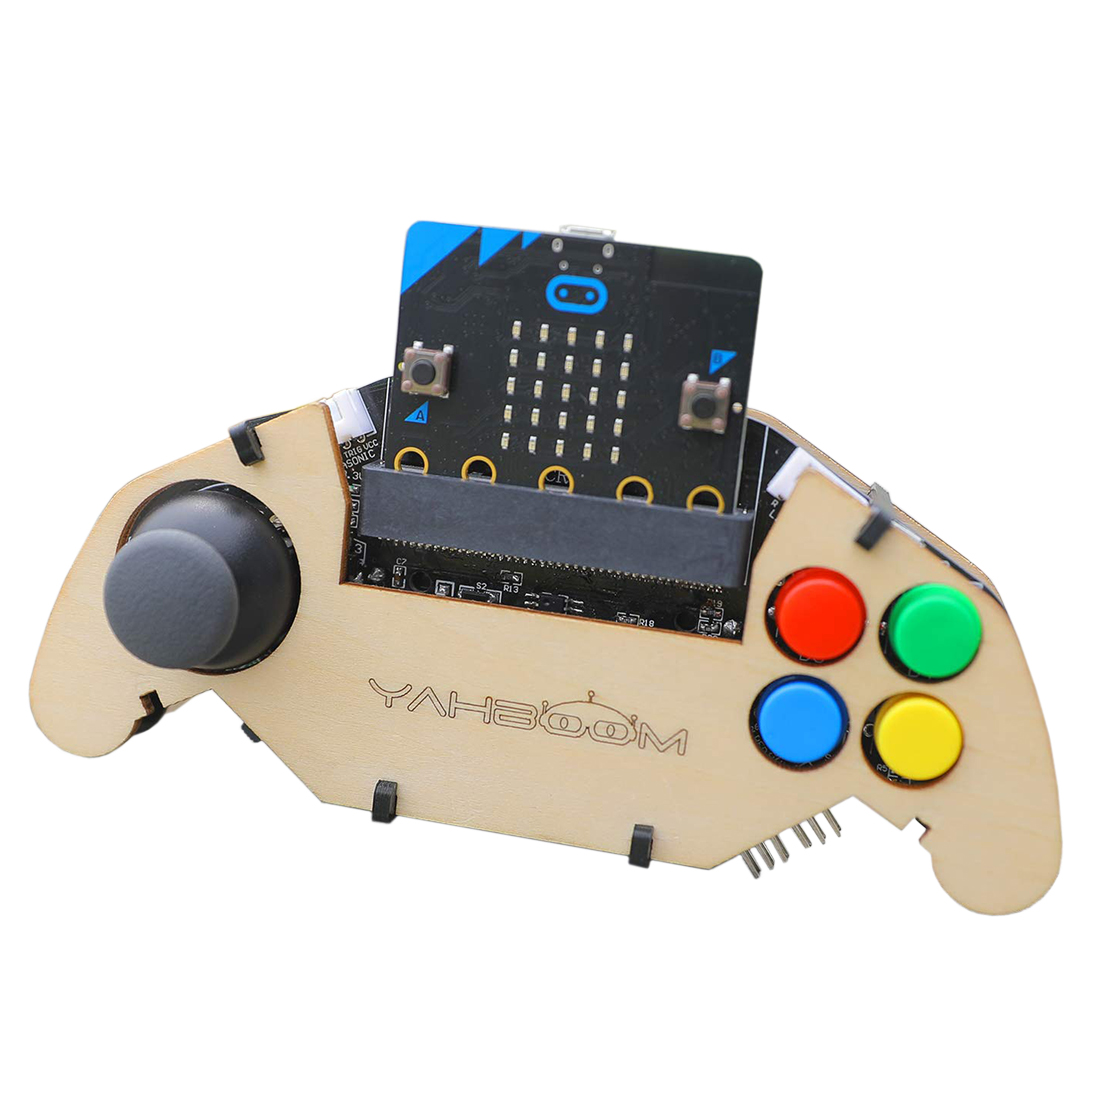 Hot MIcro:Bit Gamepad Expansion Board Handle Microbit Robot Car Joystick STEM Toys Programming Game Controller (Micro:Bit Board)